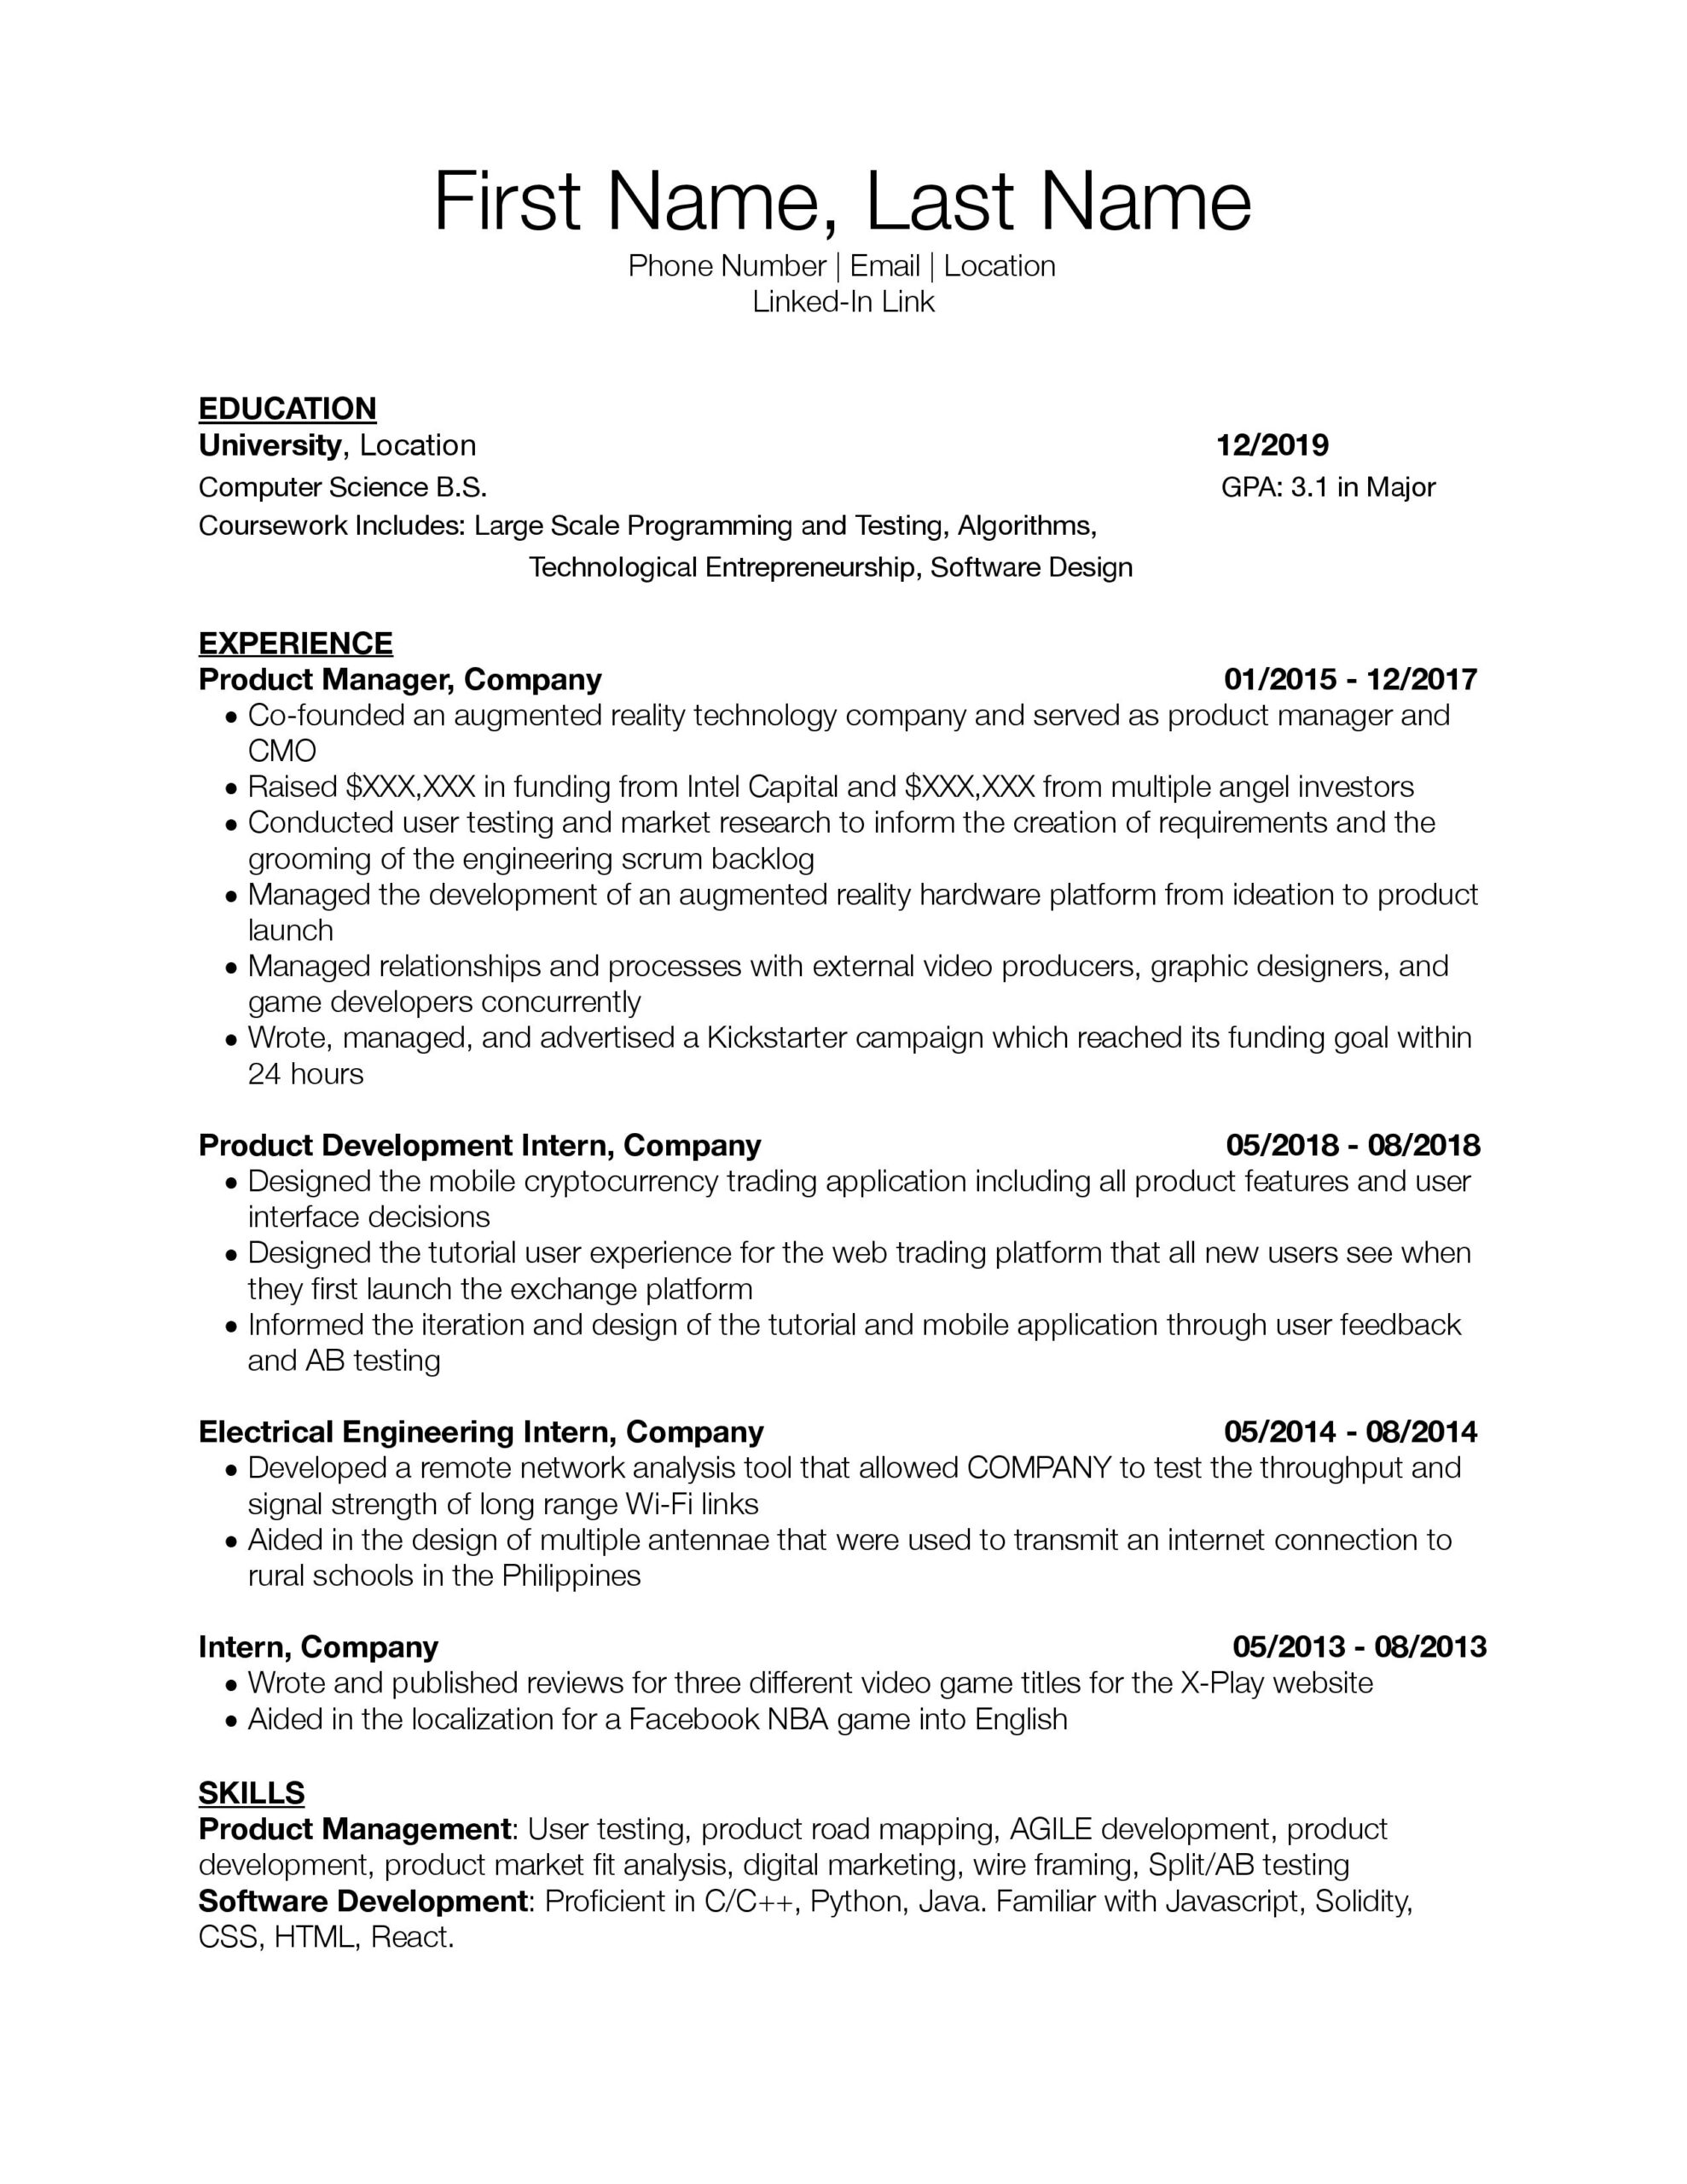 need resume critique for associate junior product manager roles would appreciate any Resume Associate Product Manager Resume